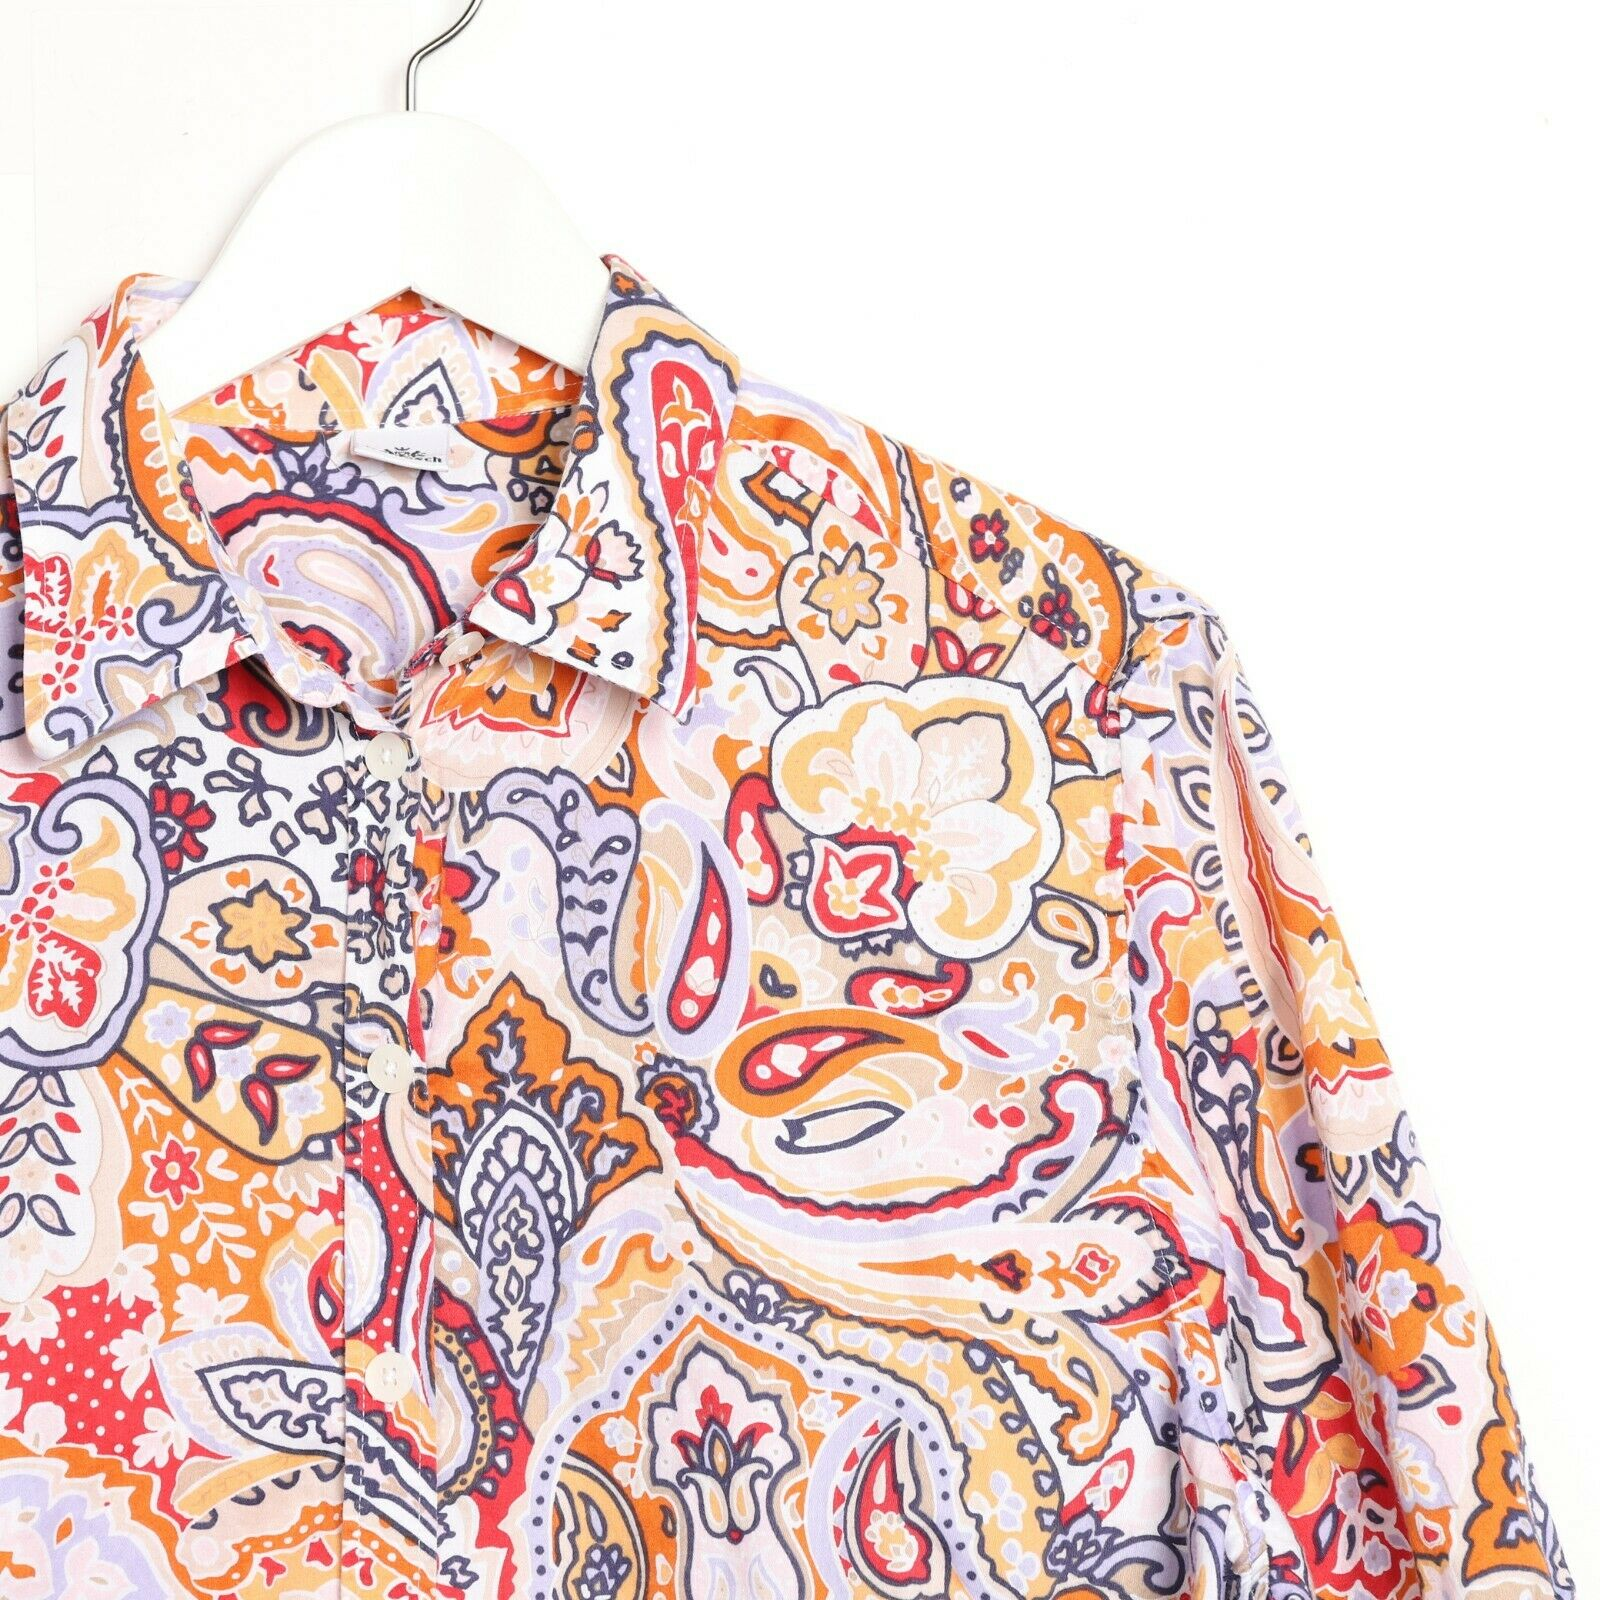 Vintage Women's 90s ABSTRACT Short Sleeve Festival Party Shirt | XL